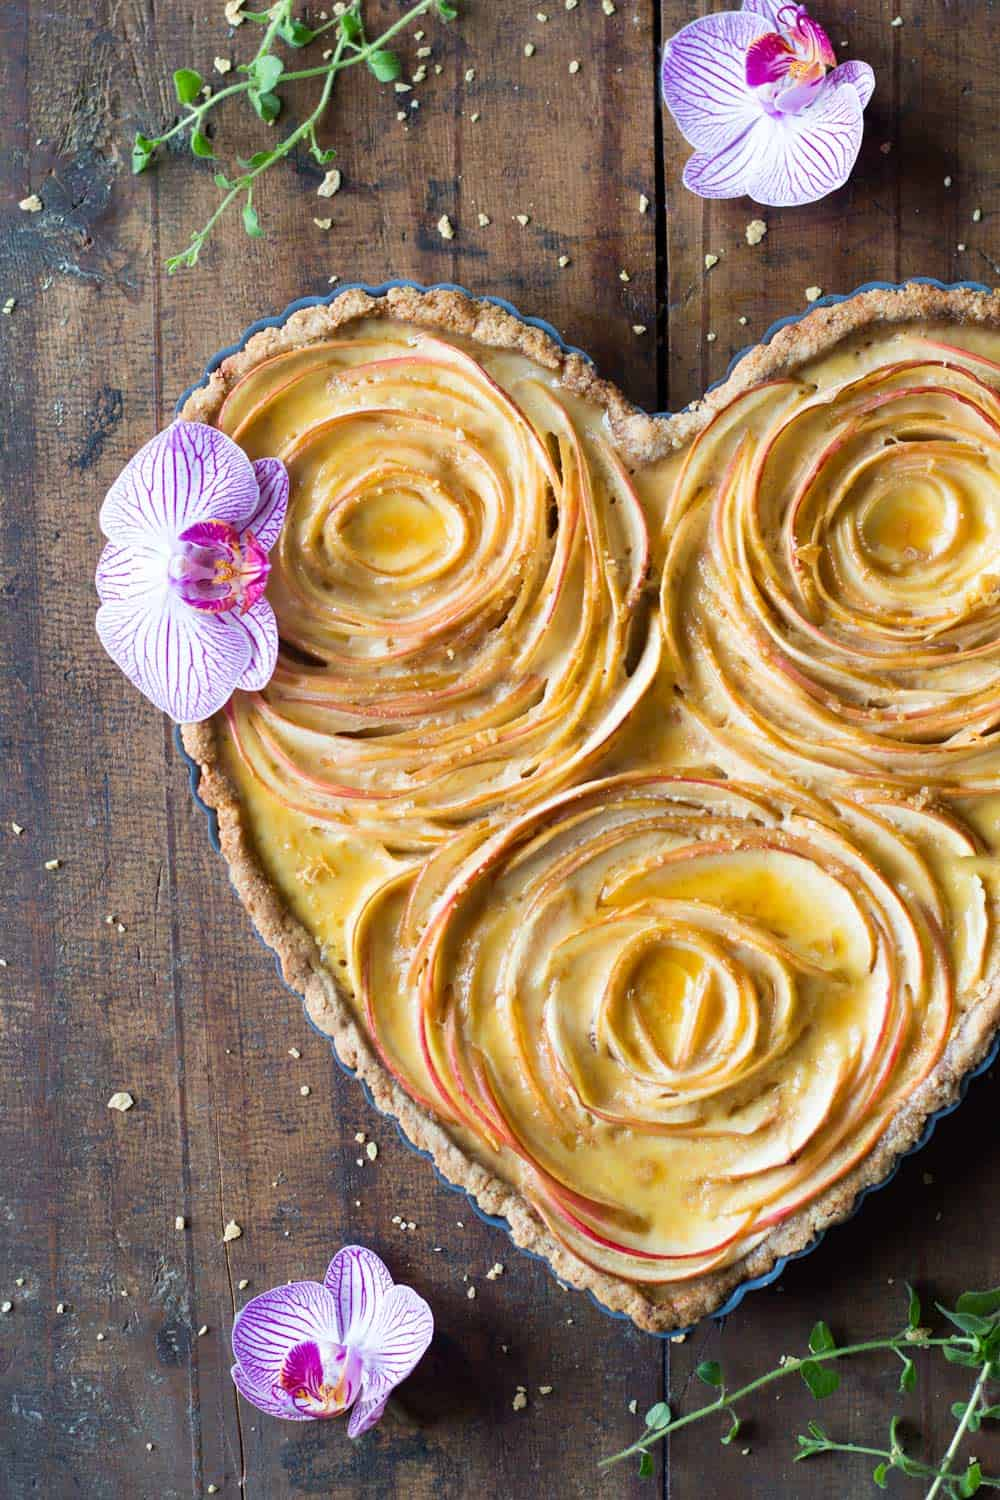 Valentine's apple rose tart decorated with orchids.